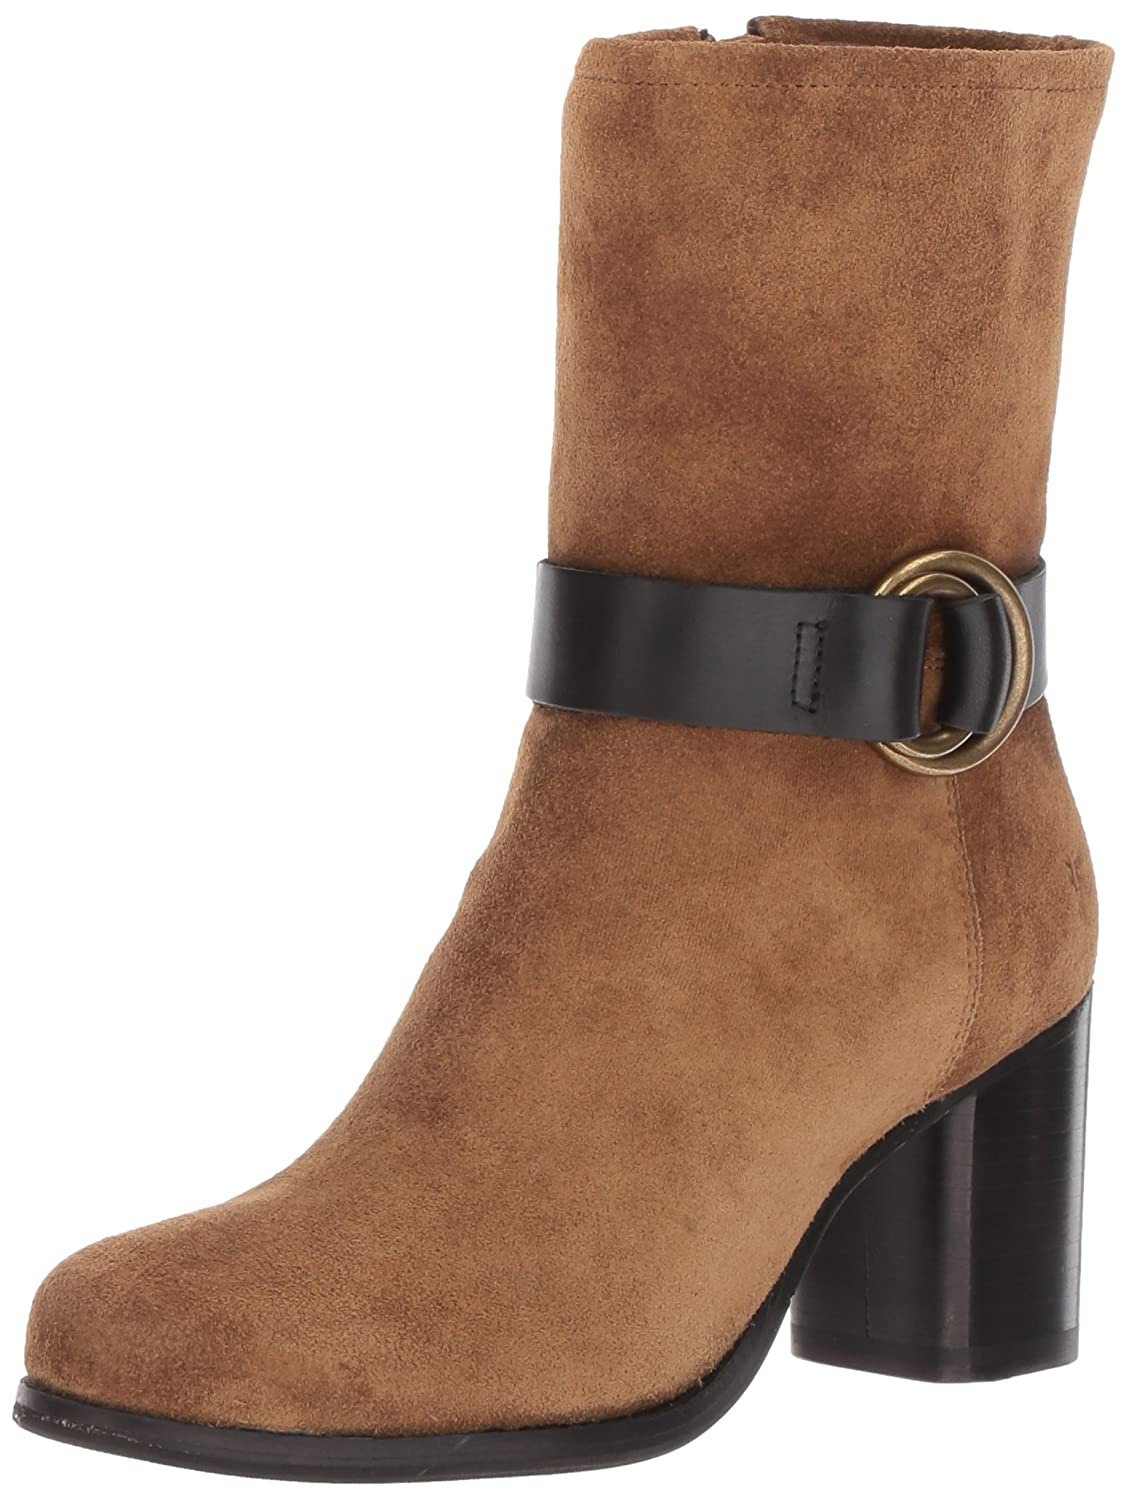 FRYE Women's Addie Harness Mid Boot B01N9FMJ2P 6.5 B(M) US|Chestnut Suede